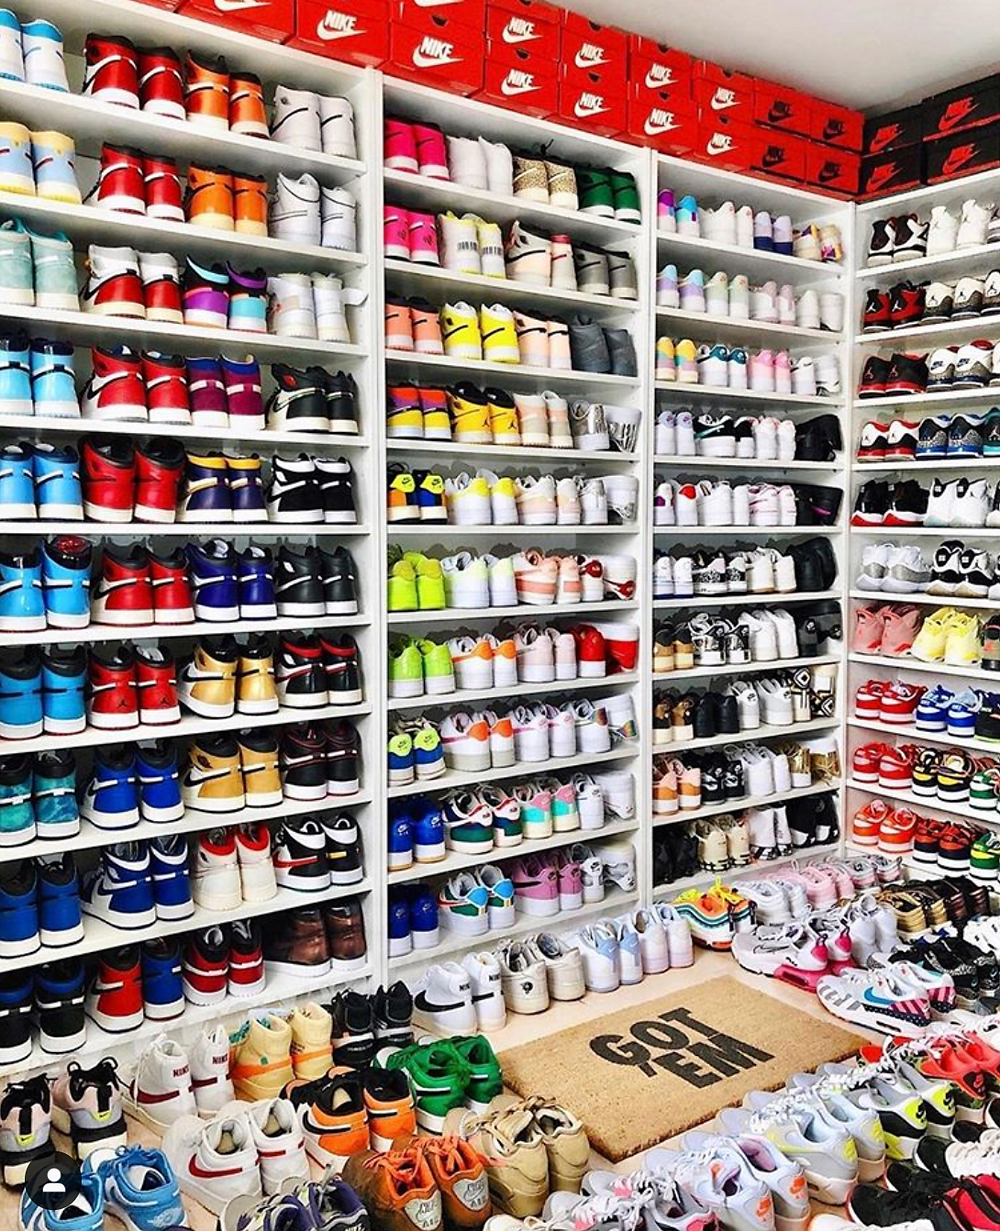 A sneaker room with shelves full of sneakers